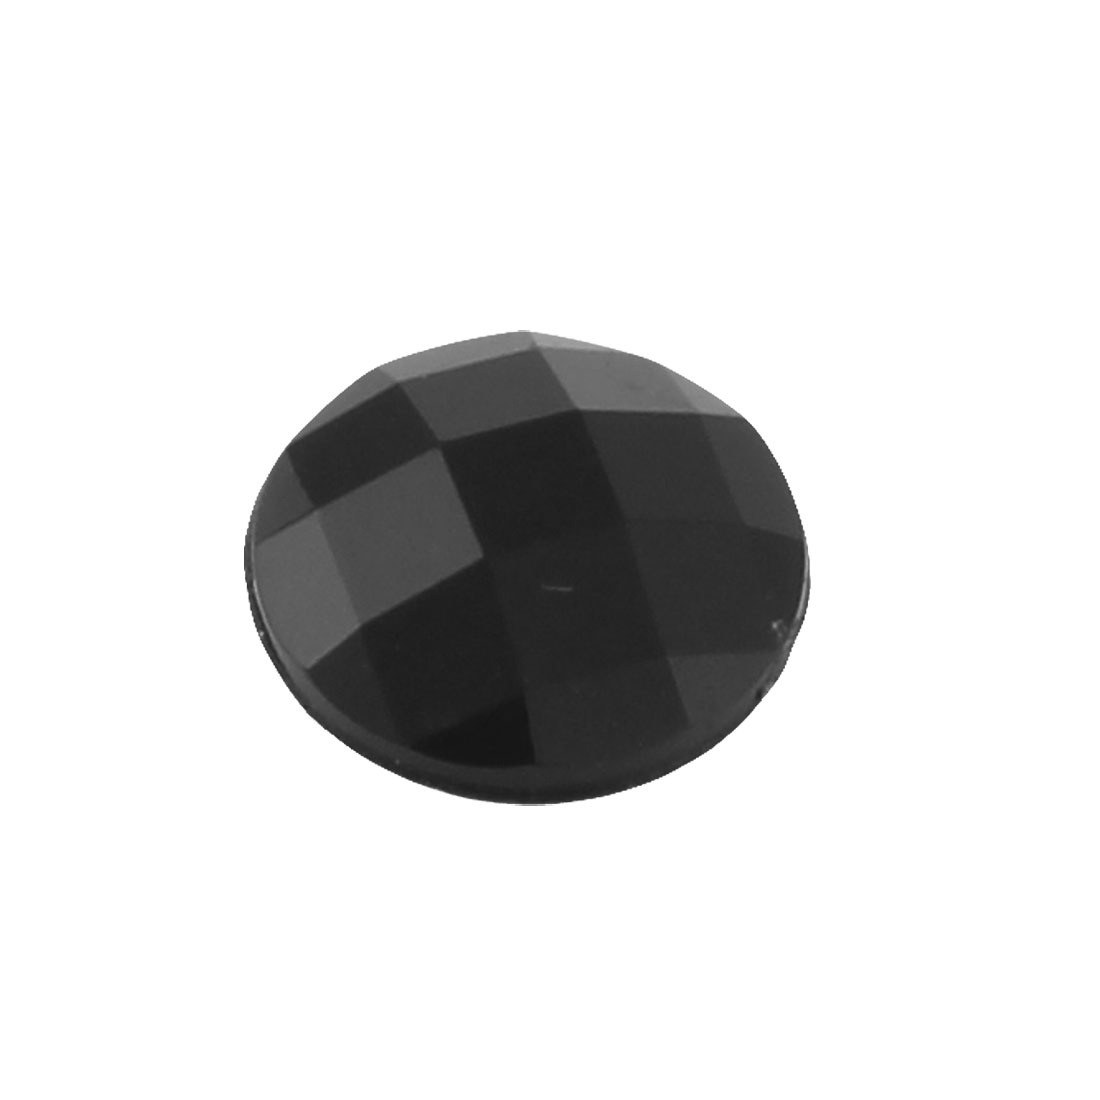 Black Plastic Crystal Round Home Button Sticker for Phone Touch